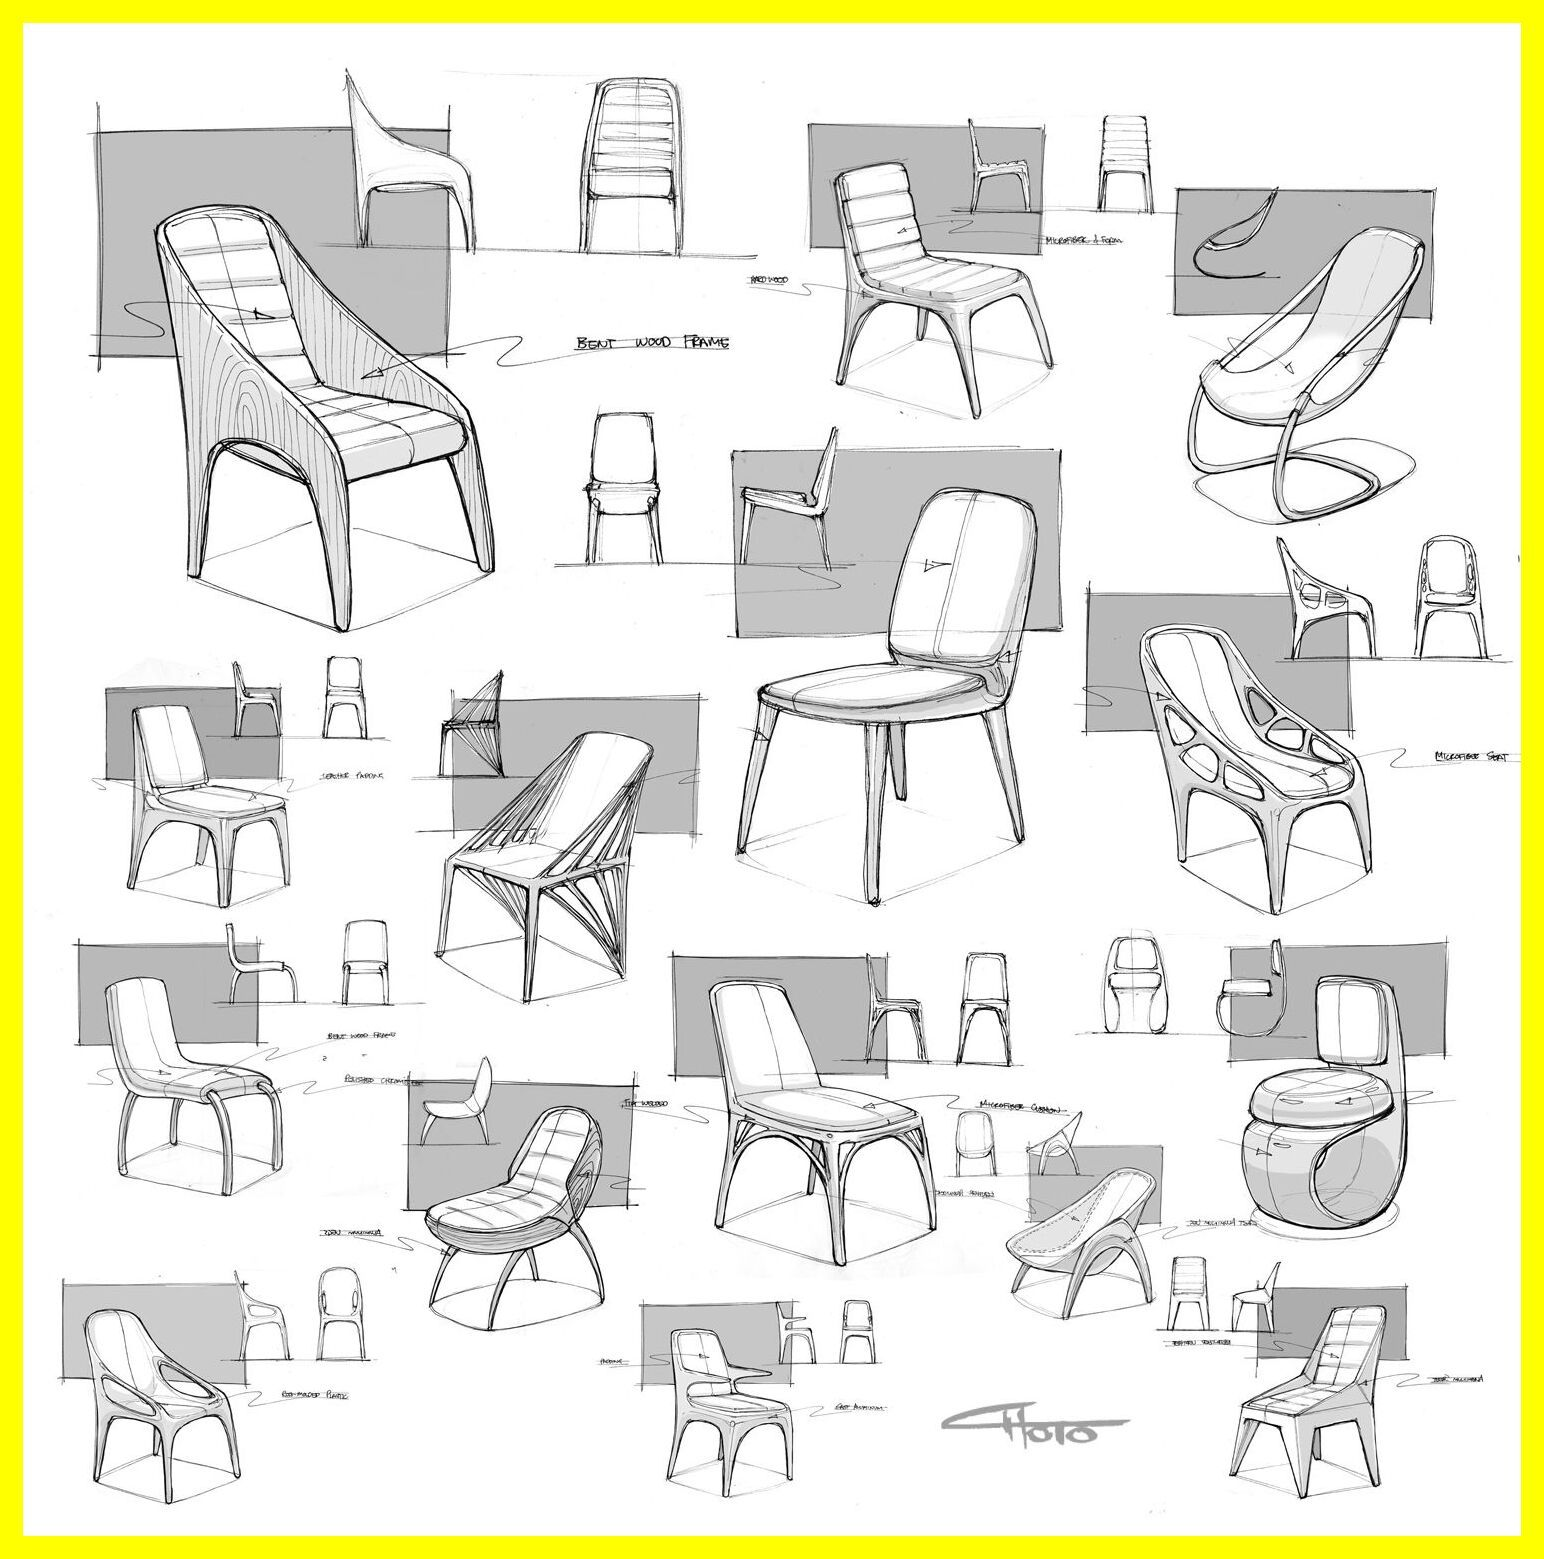 86 Reference Of Chair Sketch Furniture In 2020 Furniture Design Sketches Industrial Design Sketch Chair Design